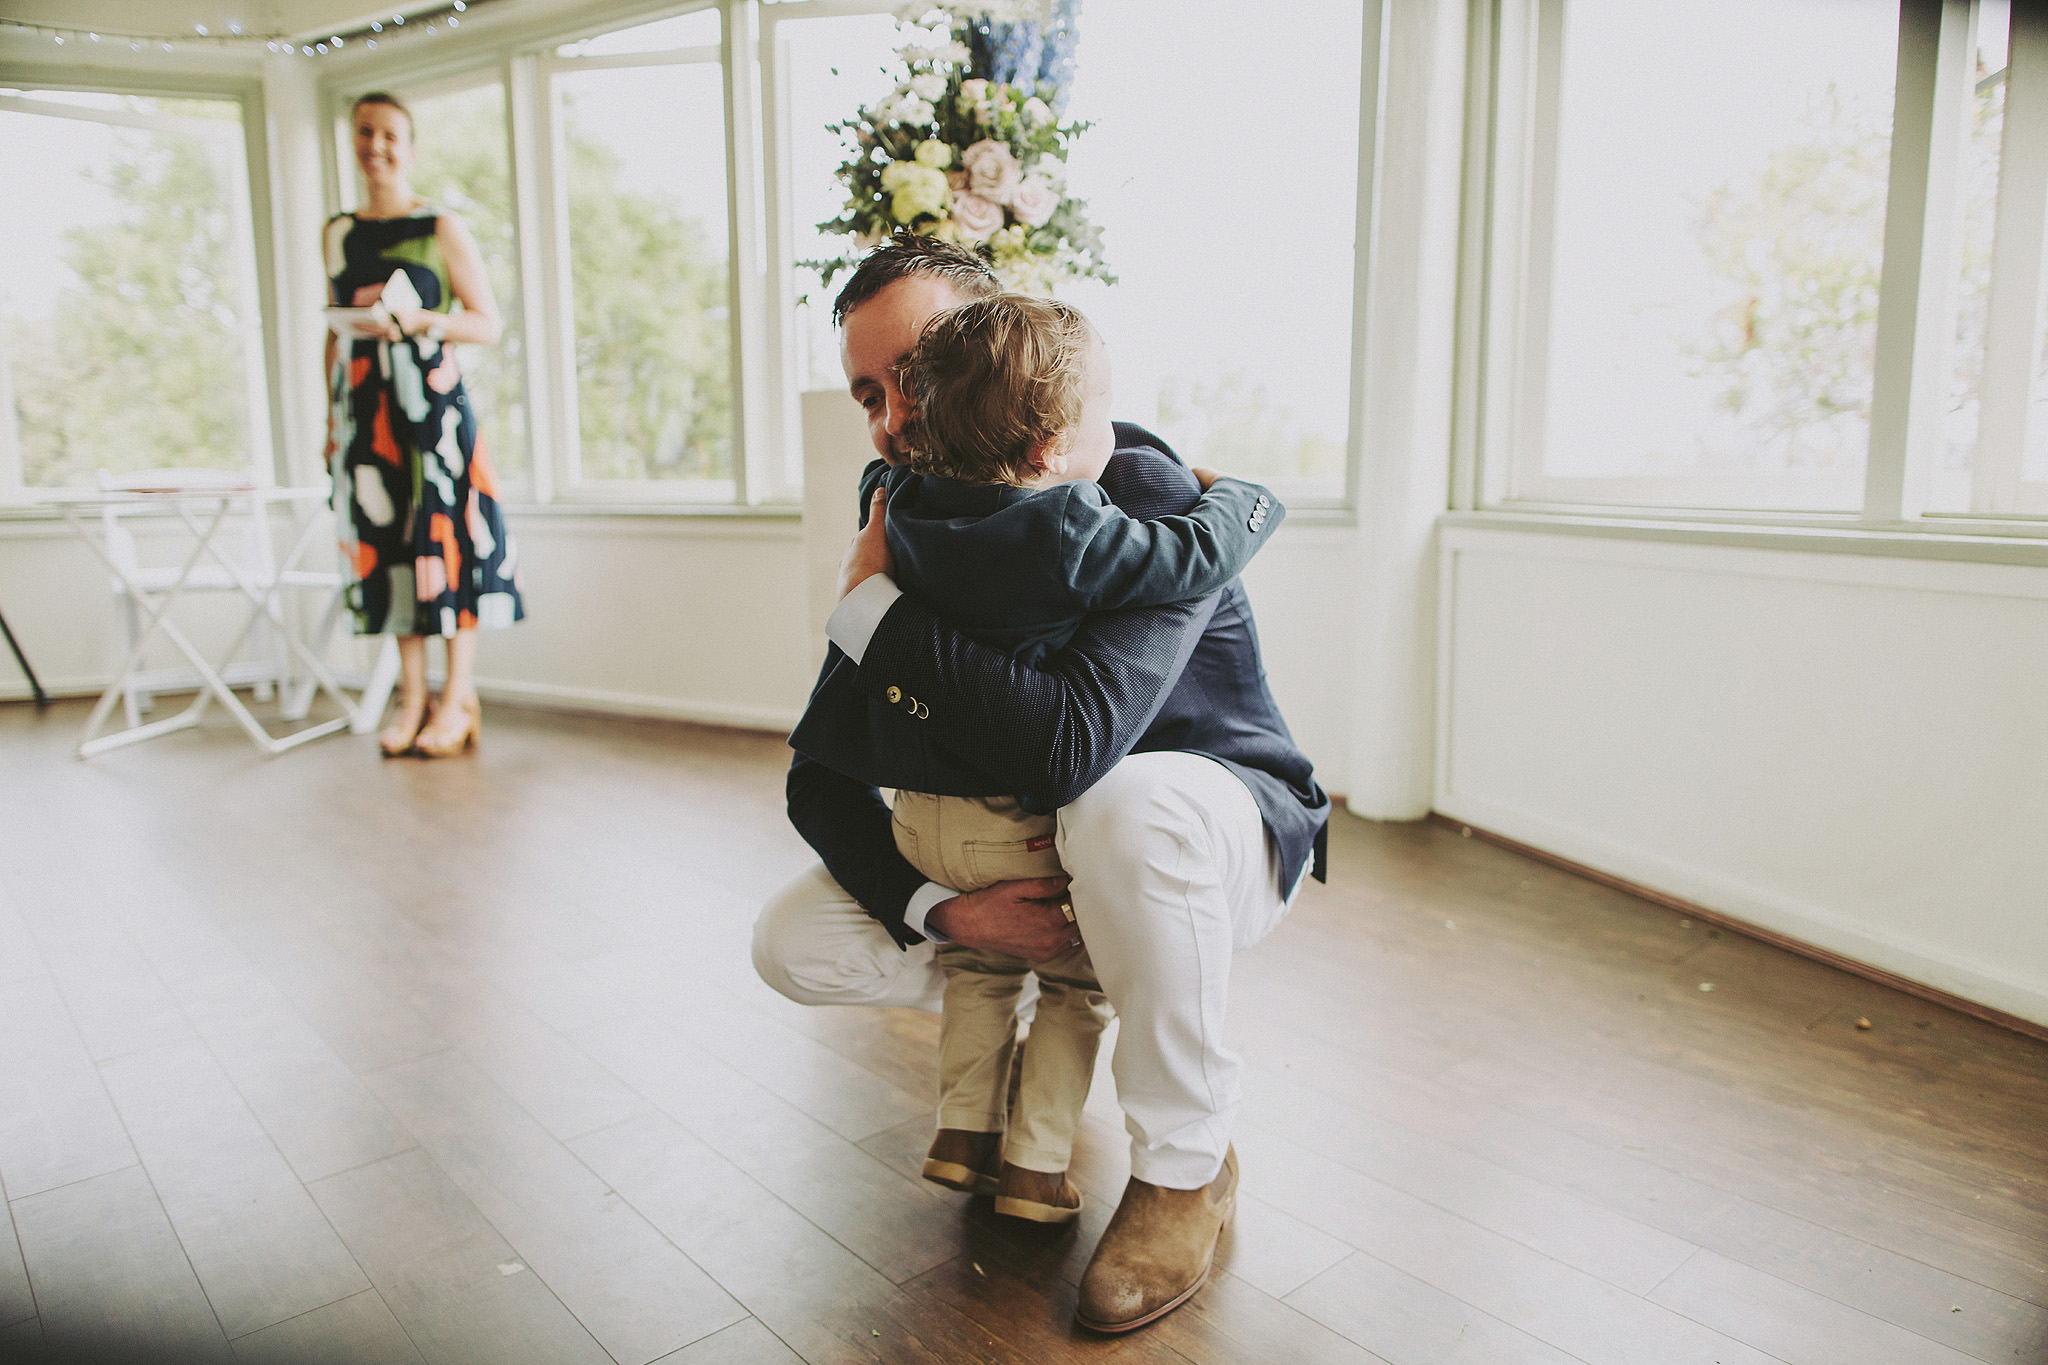 Little boy hugging his dad, the groom at wedding | Andrea Calodolce marriage celebrant sydney